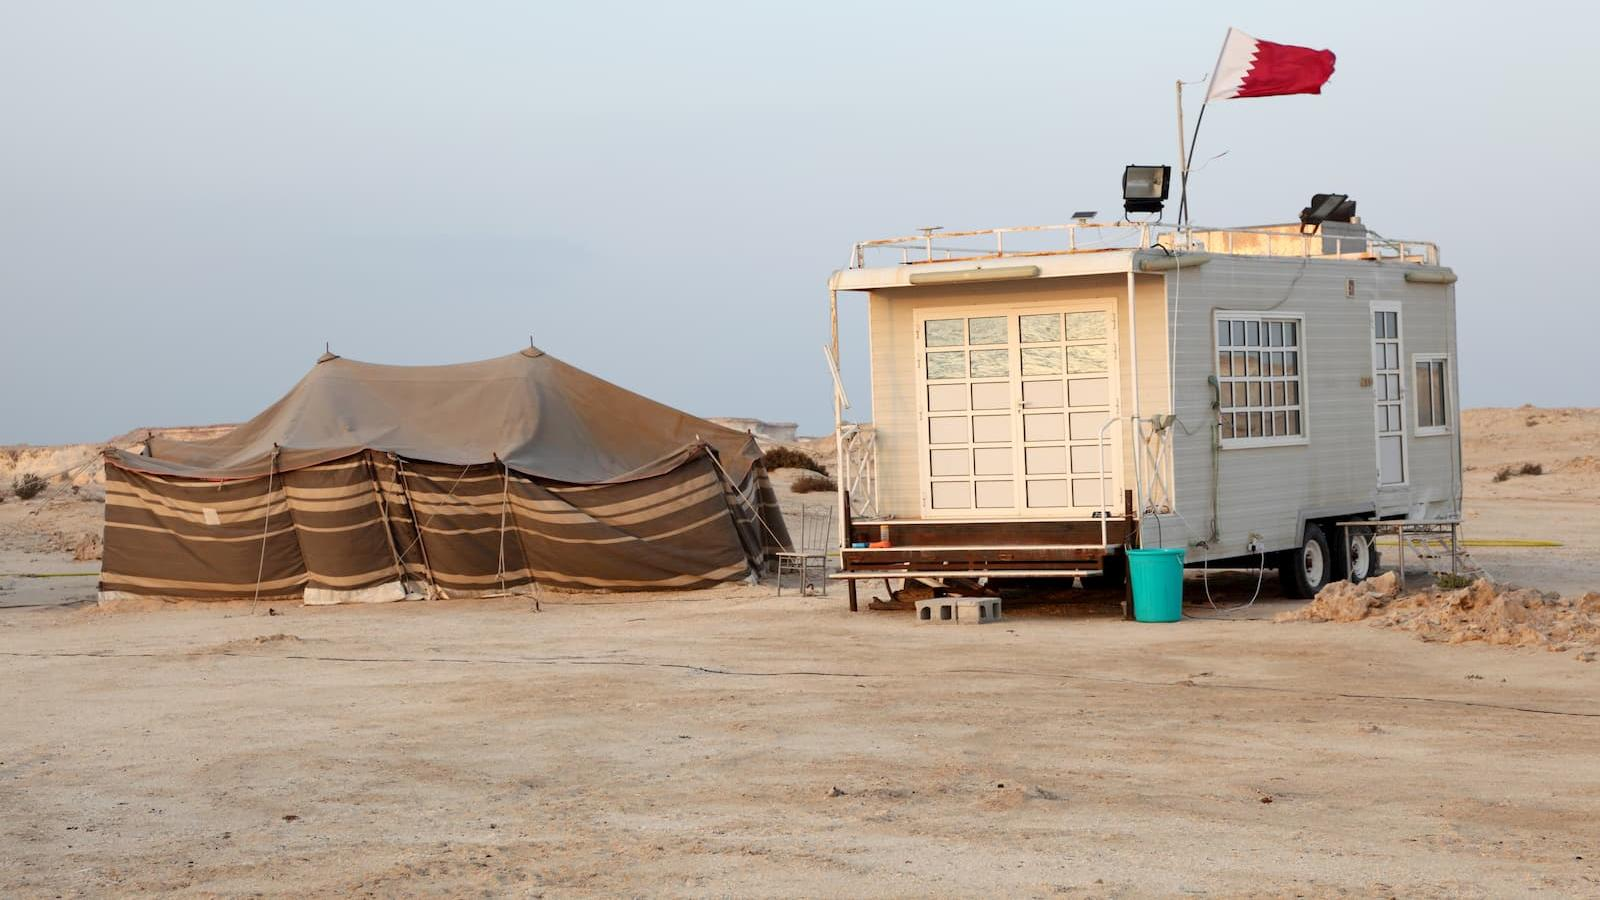 Ministry of Interior offers tips on safe camping